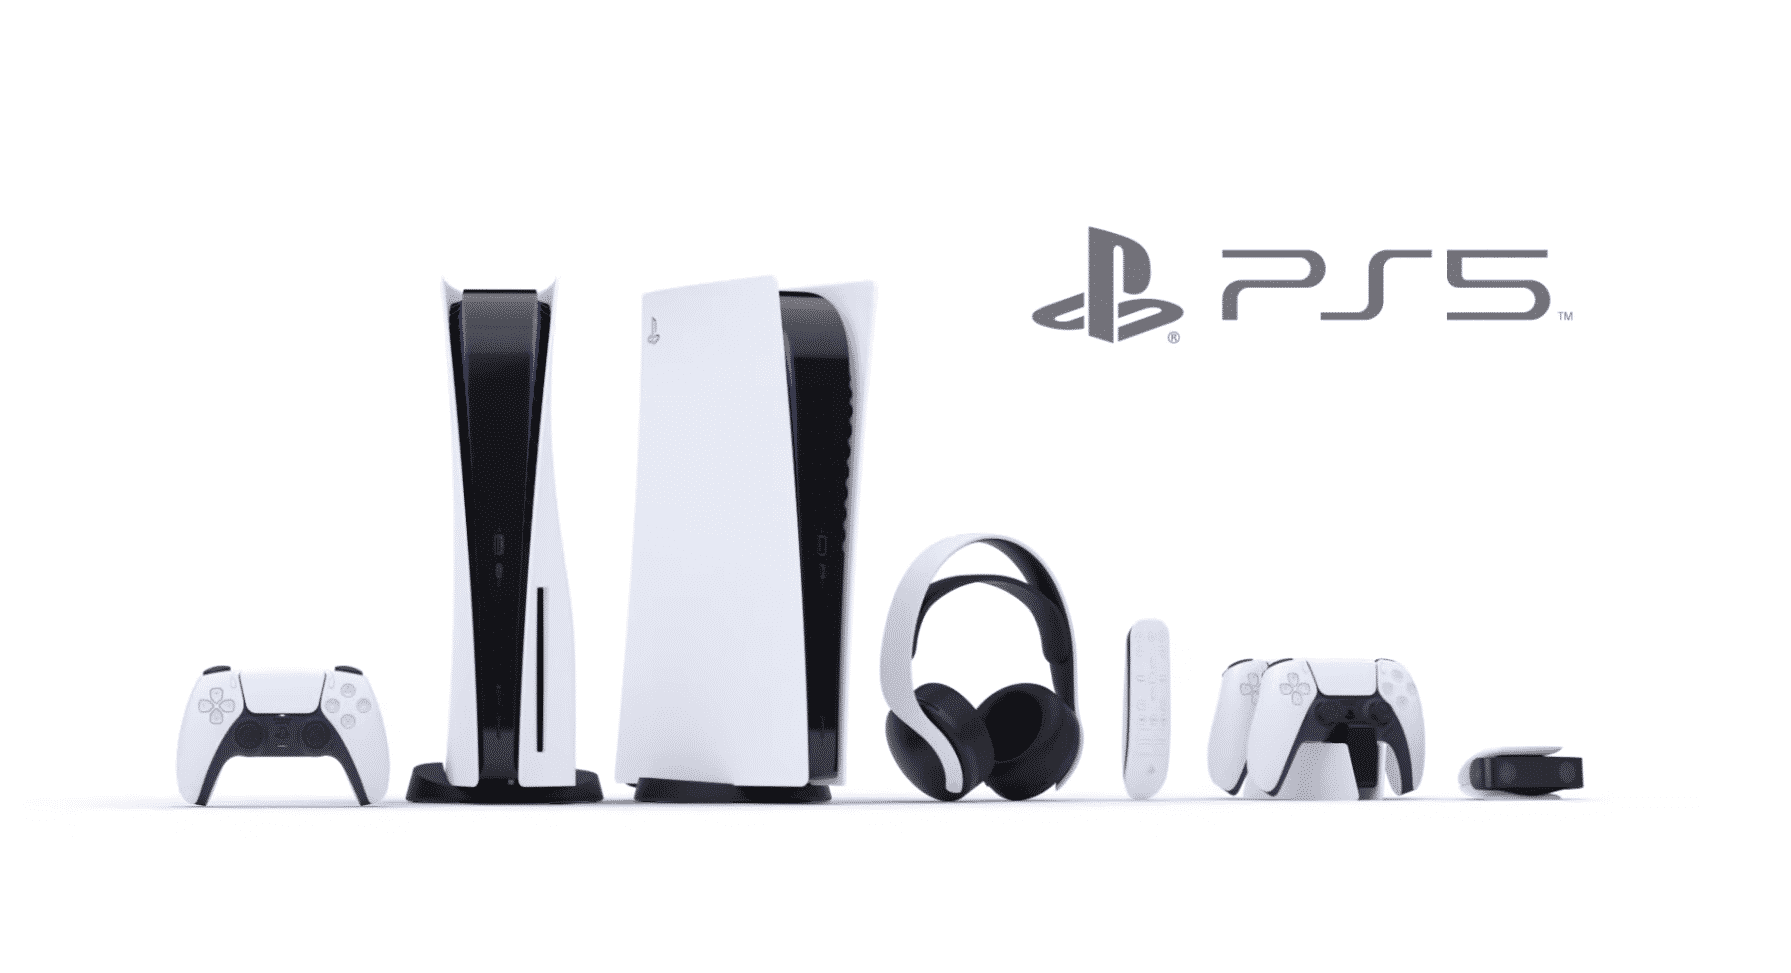 More PlayStation 5 Units in Asian Markets After January 2021, Say Sources